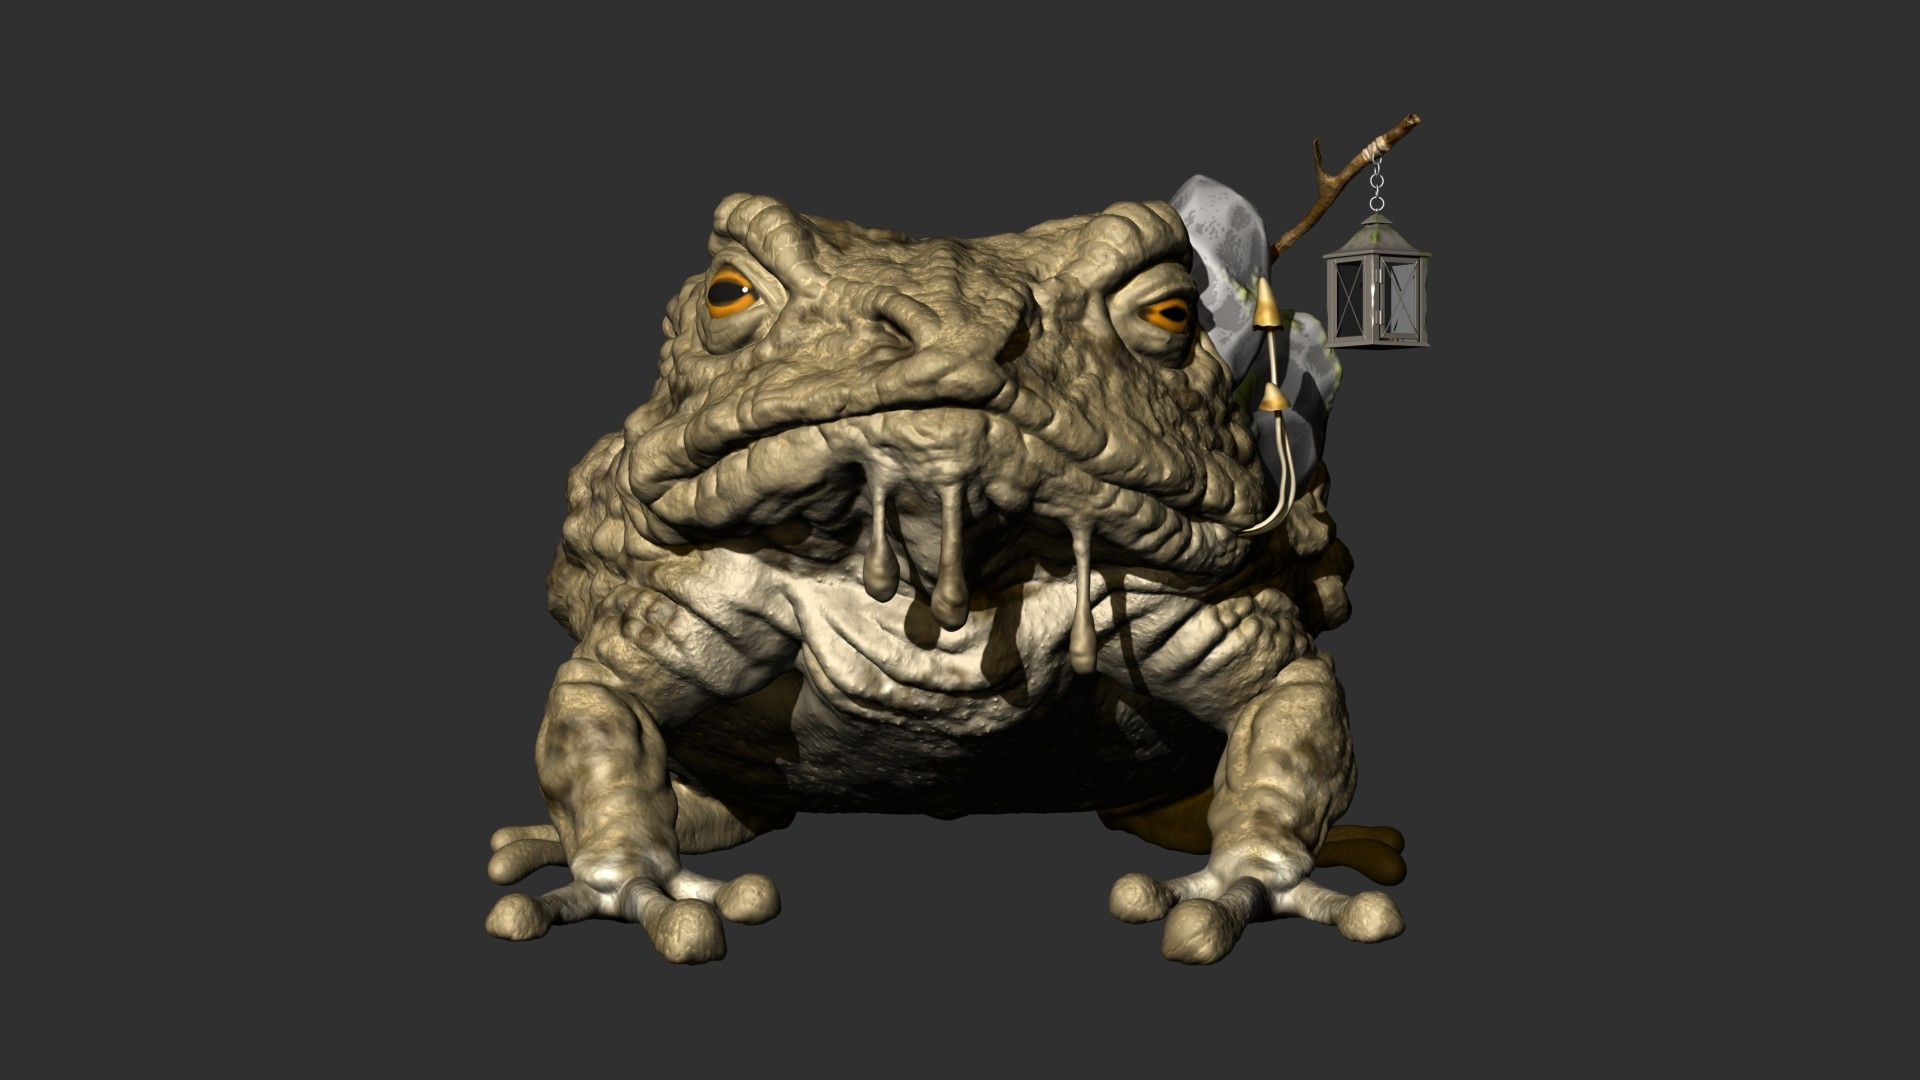 Zbrush front view